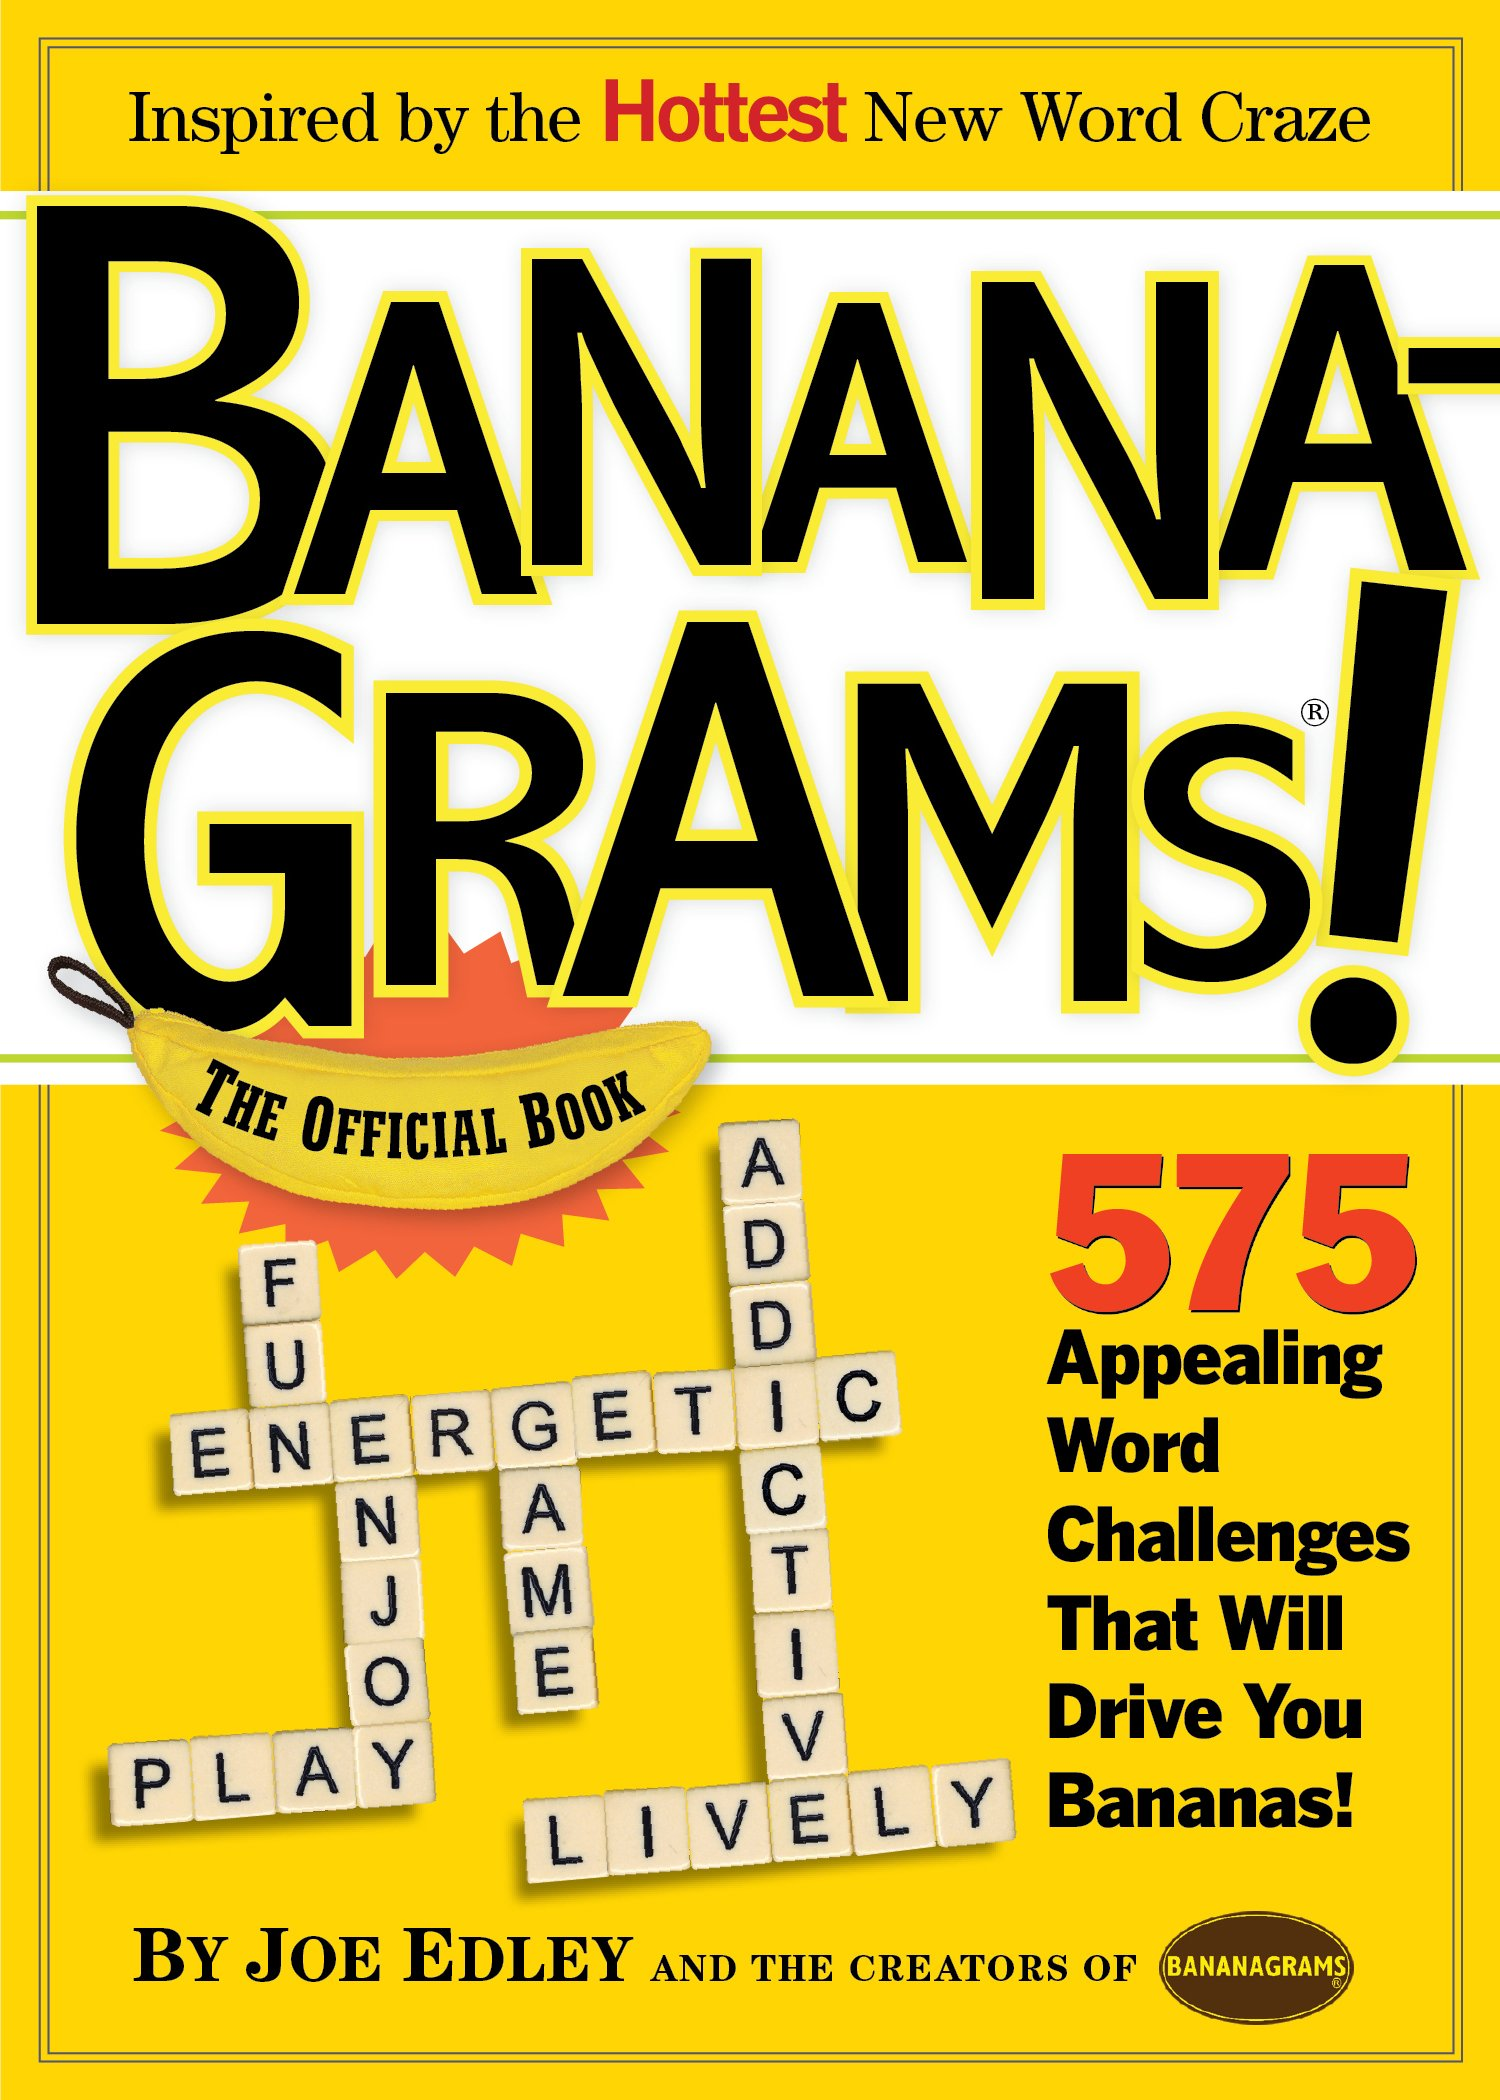 The Official Book, 575 Appealing Word Challenges That Will Drive You  Bananas!: Joe Edley: 9780761156352: Amazon.com: Books